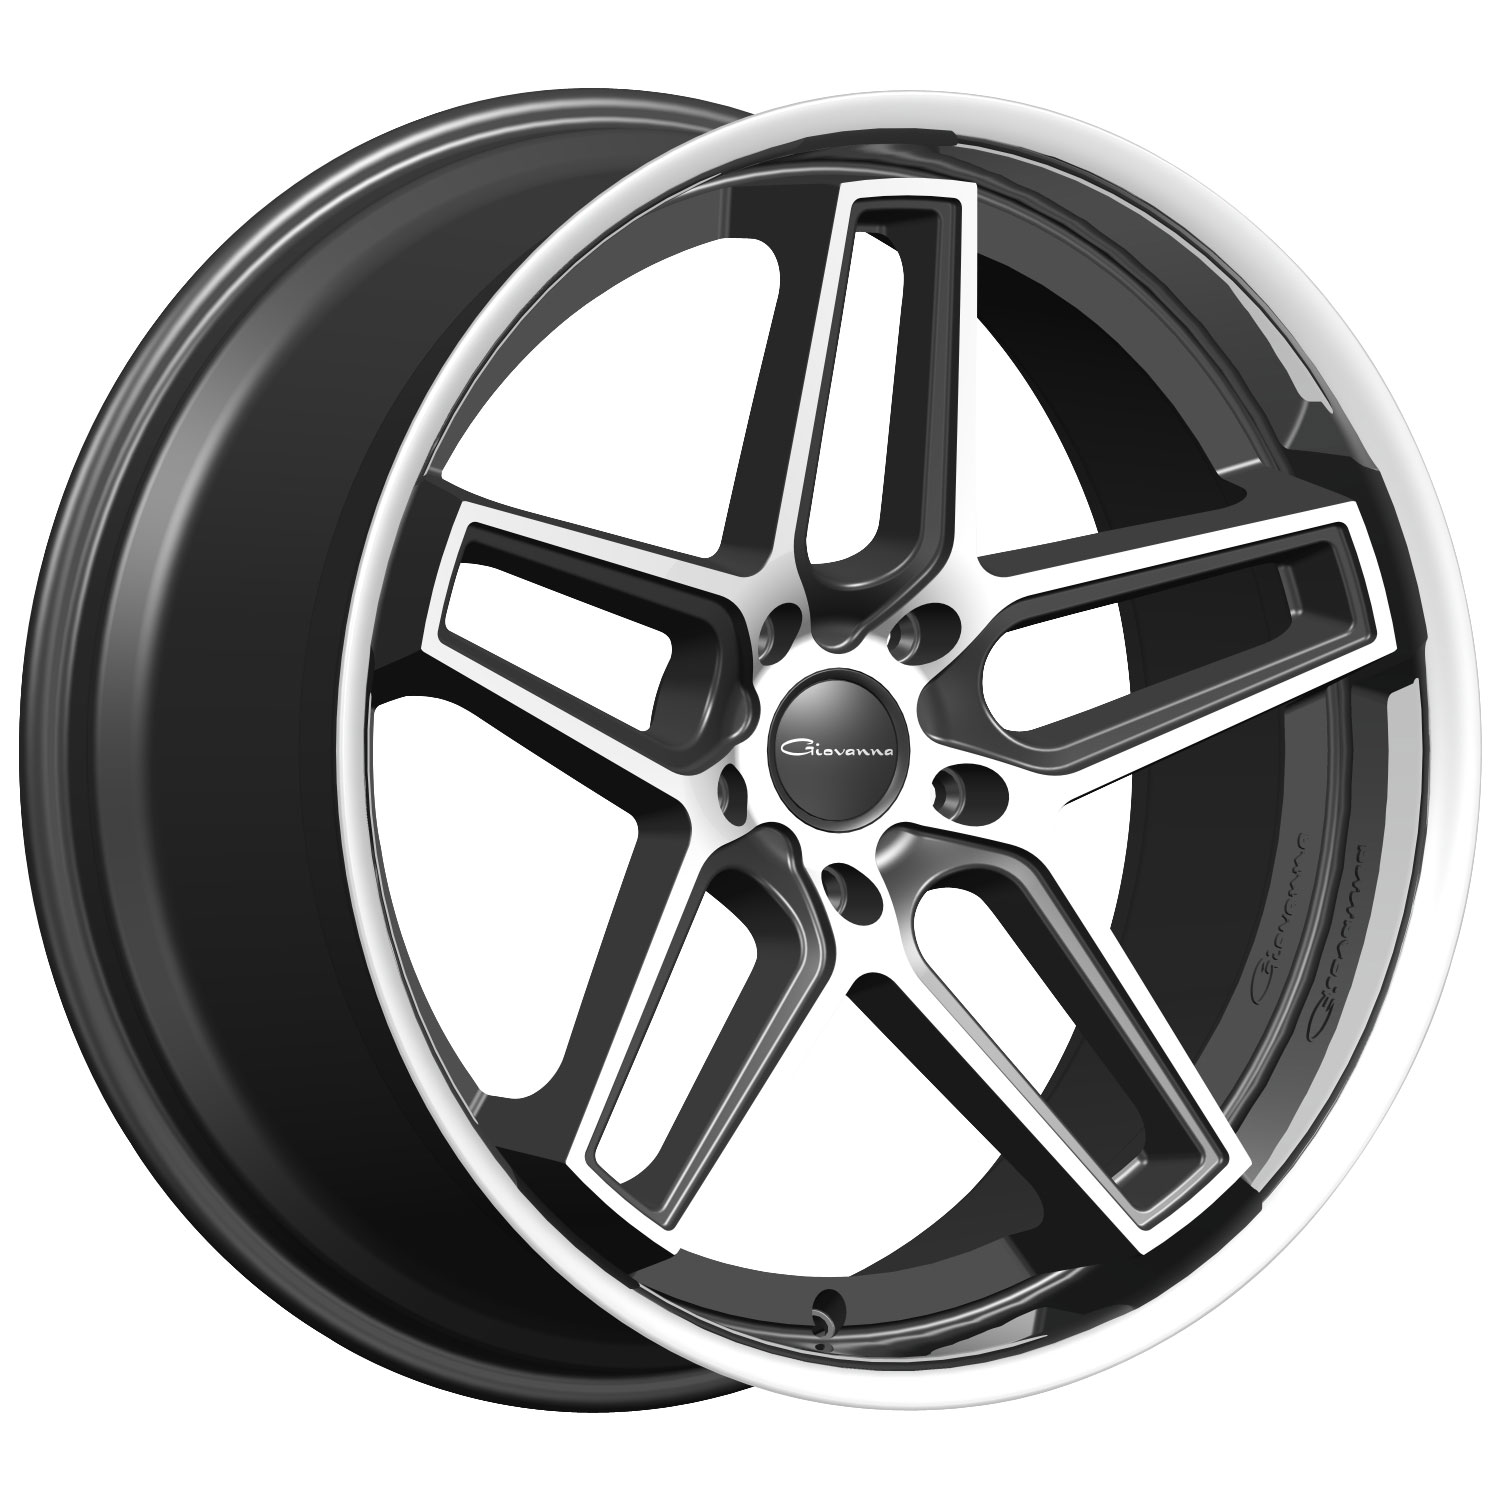 Giovanna-Austin-22x10.5-Black-with-Machined-Face